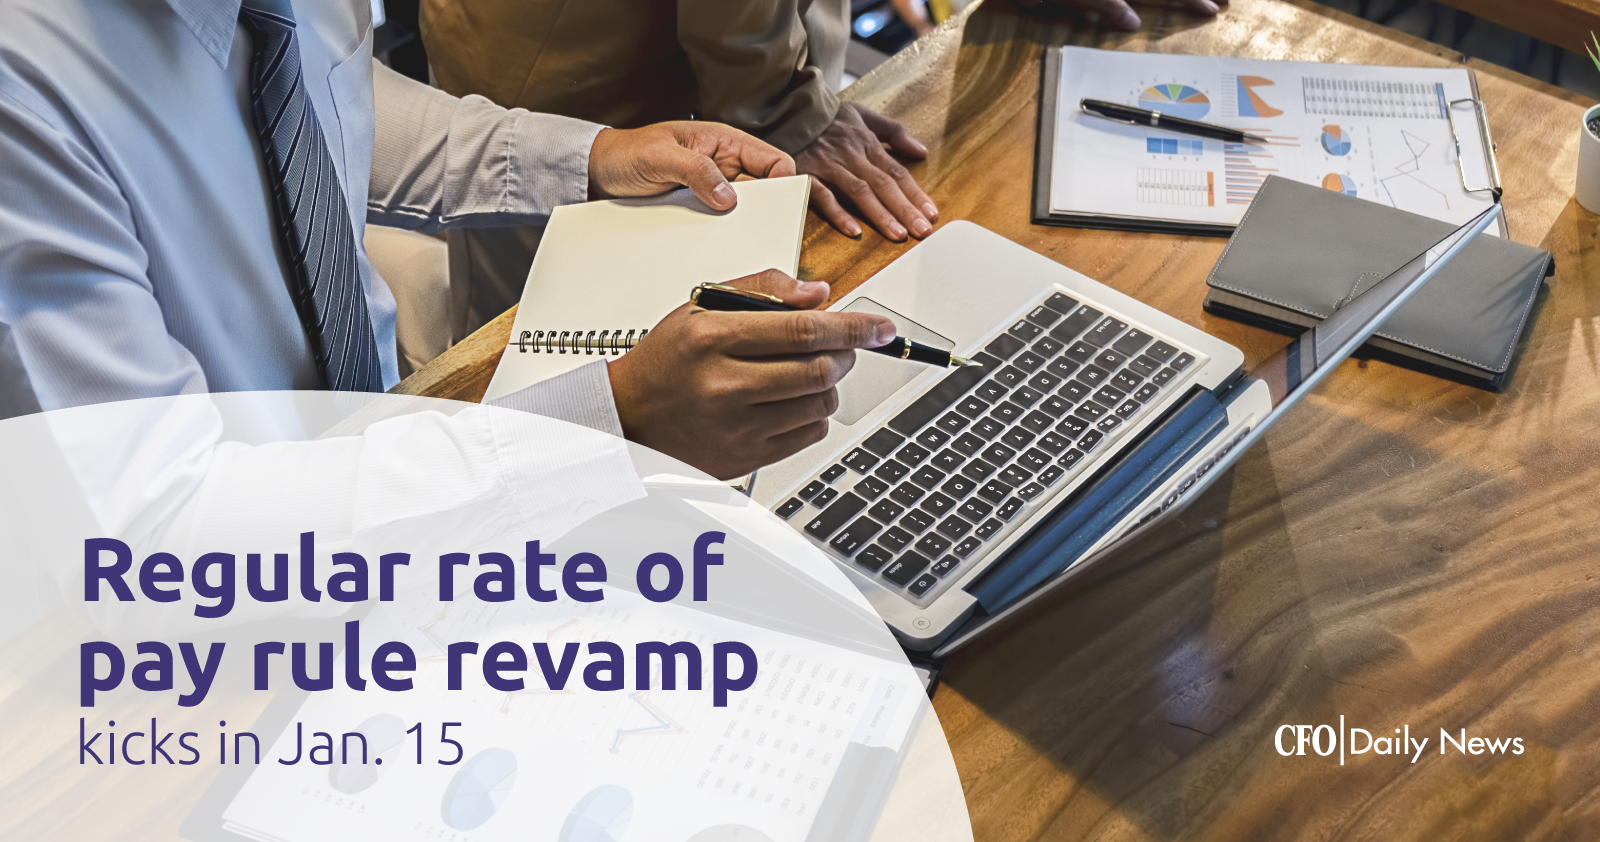 Regular rate of pay rule revamp